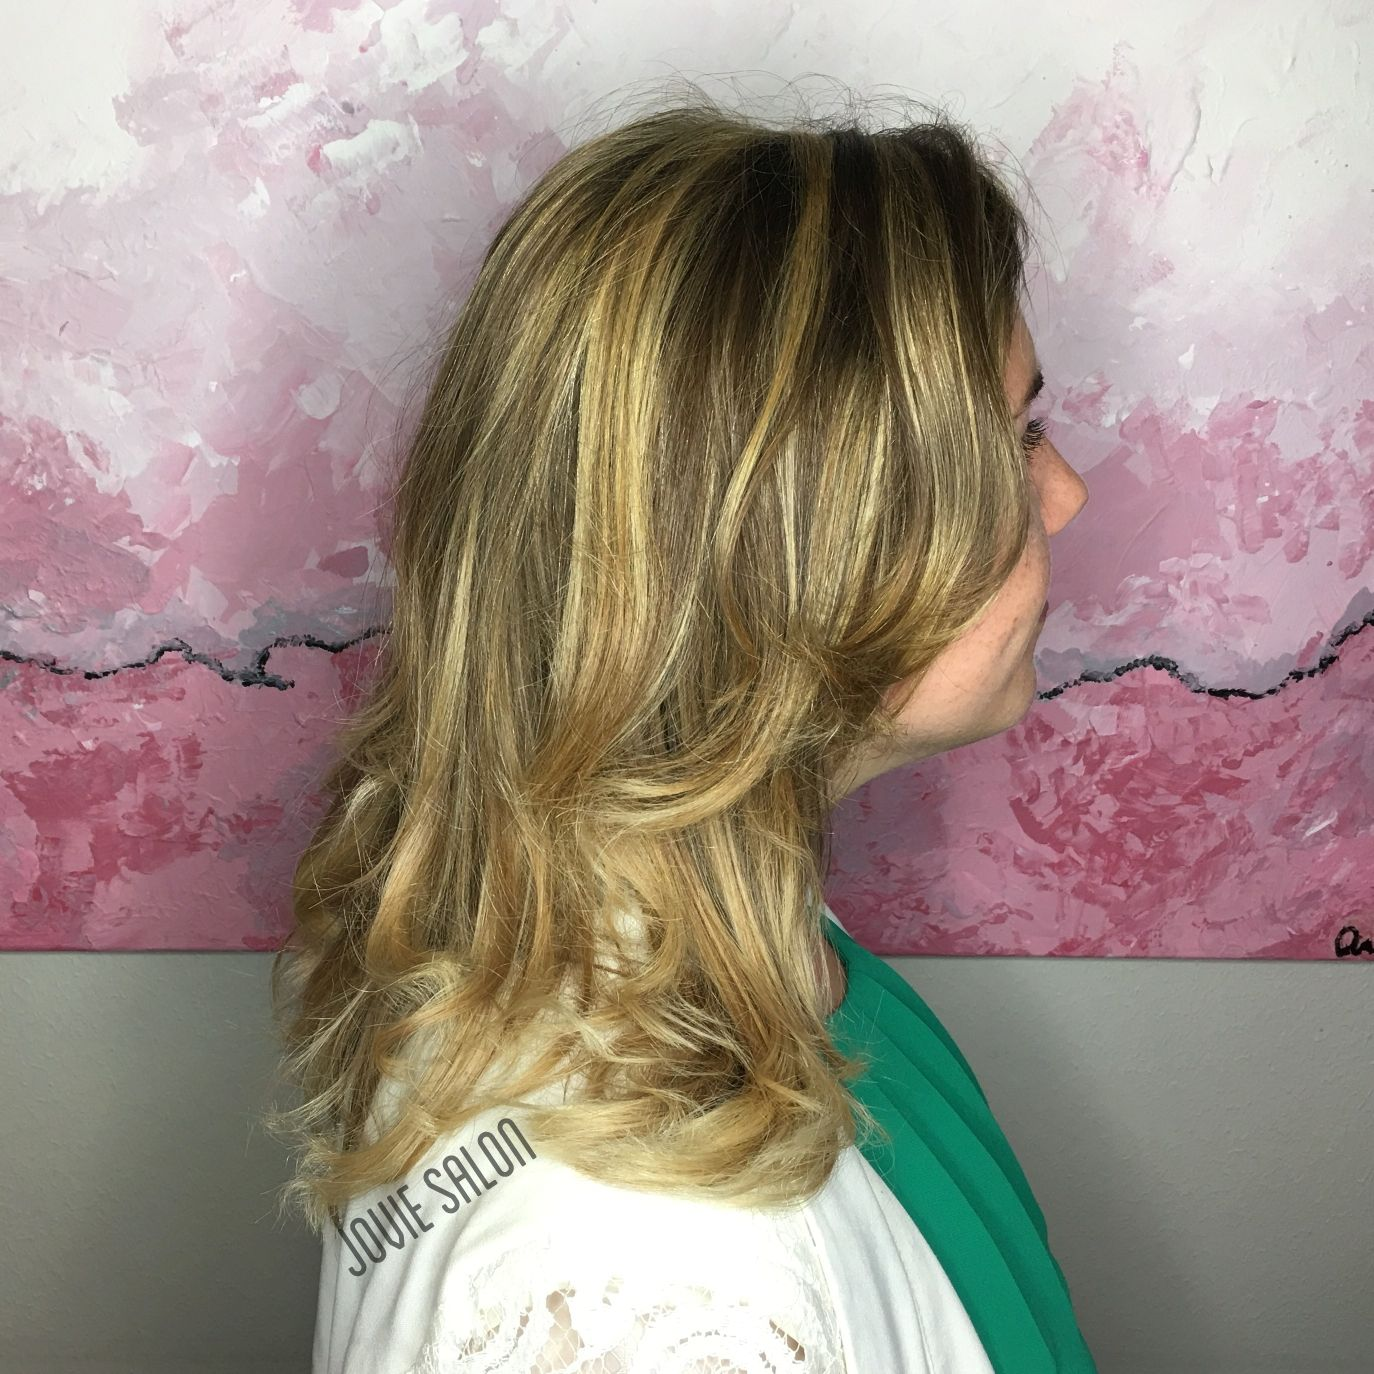 Blending an old balayage with some new golden highlights by